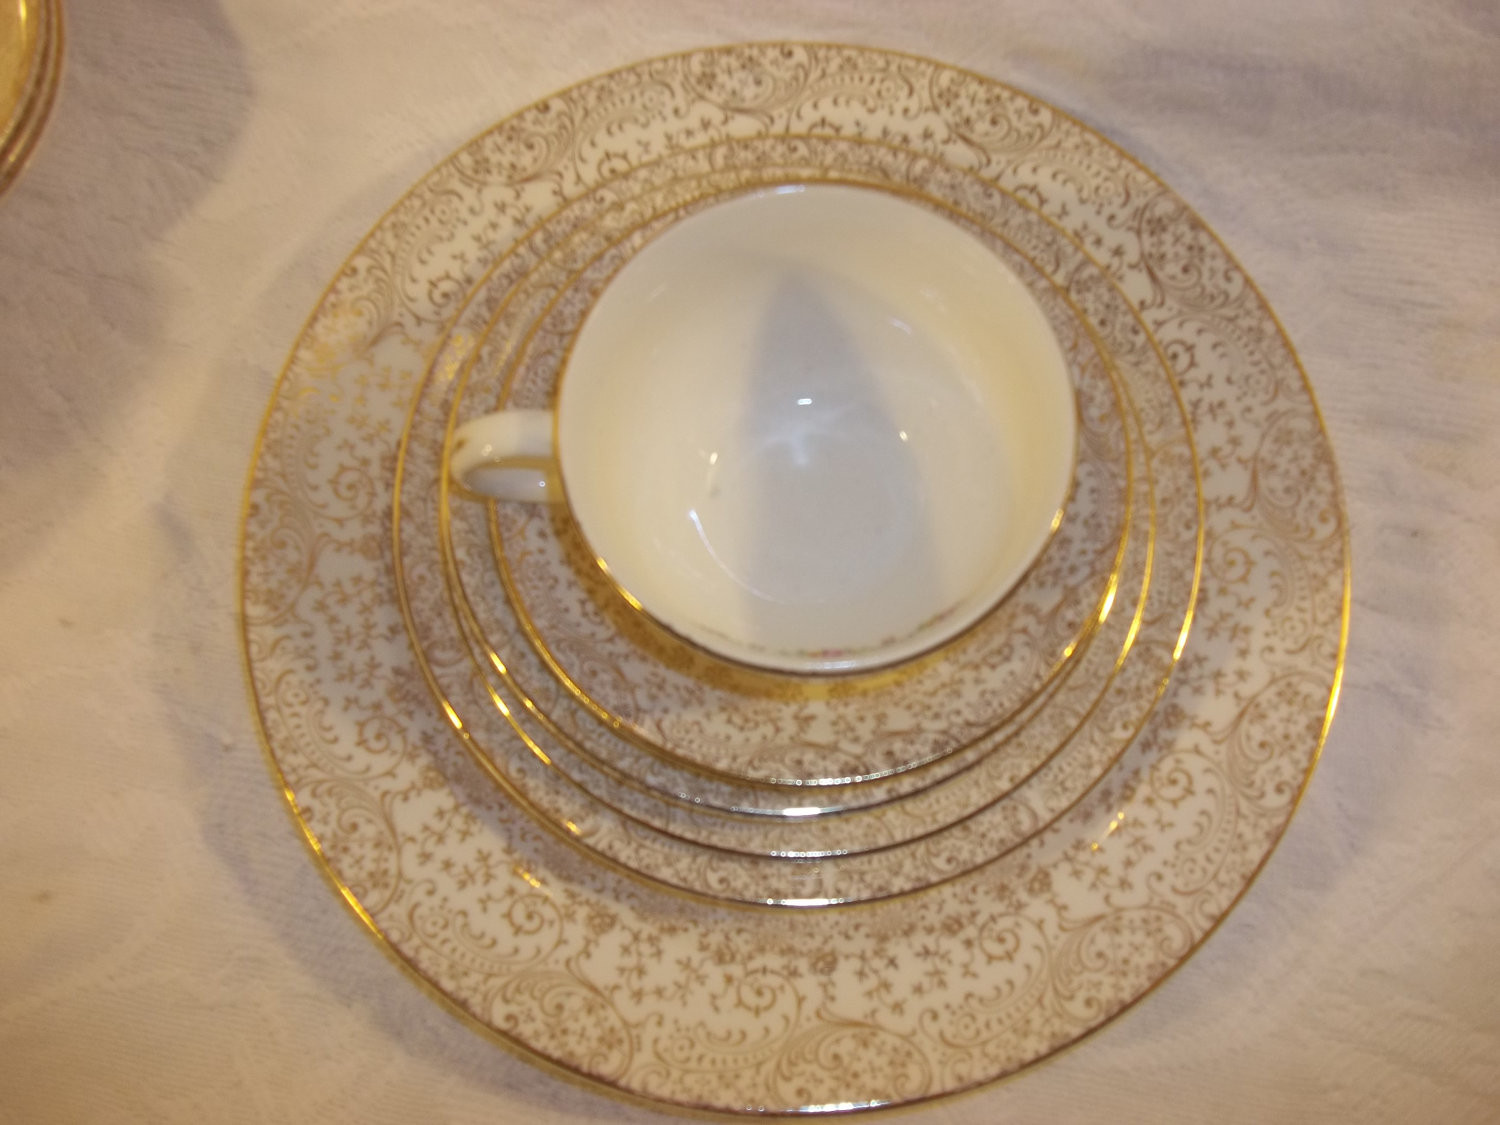 Gold Dinner Ware  Vintage Antique Liberty Gold Dinnerware Set Plate Cup Saucer